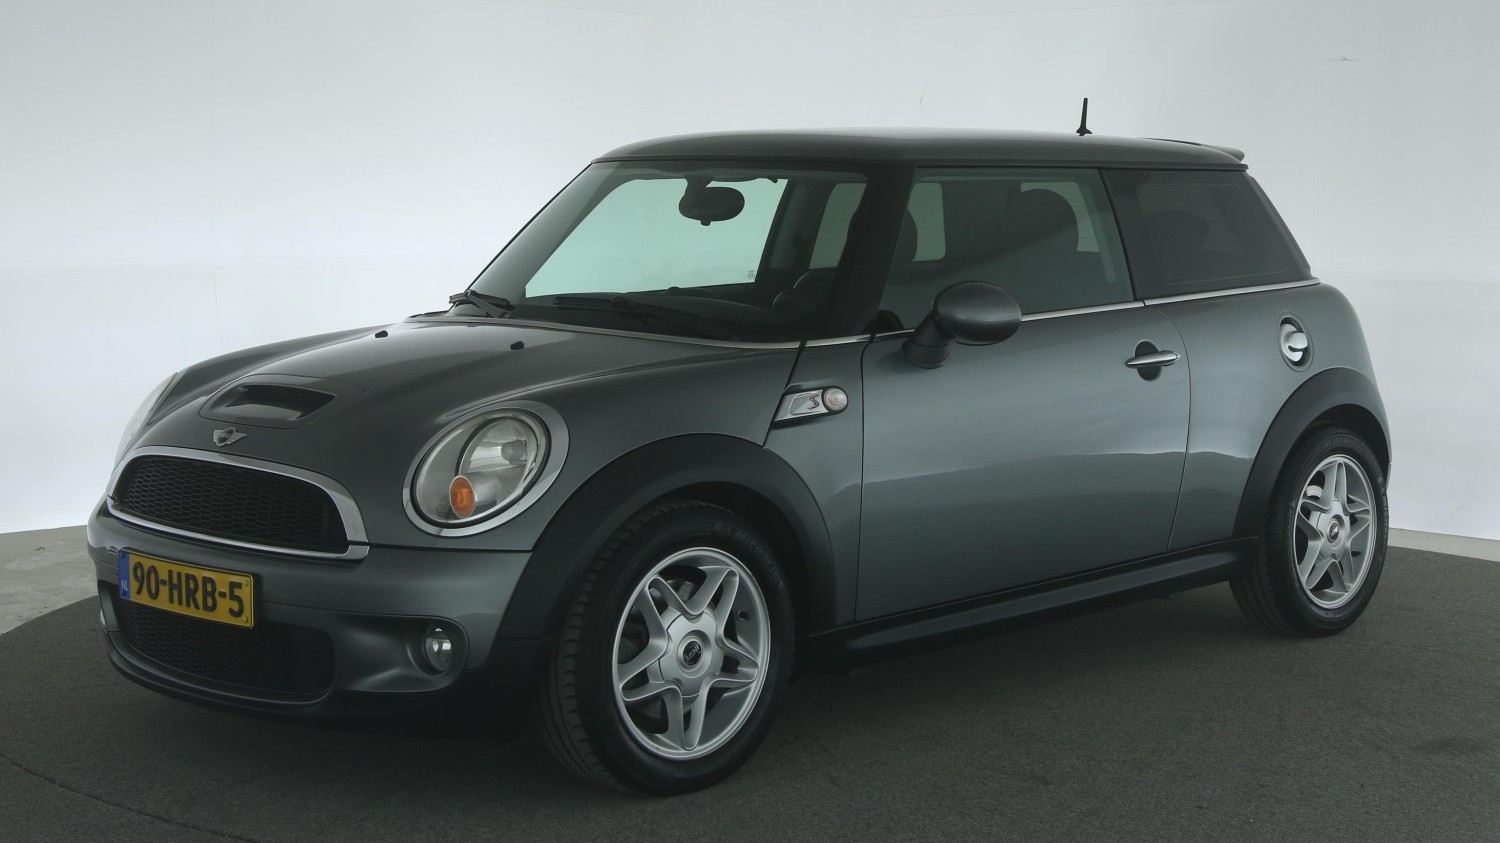 Mini Cooper S Hatchback 2009 90-HRB-5 1